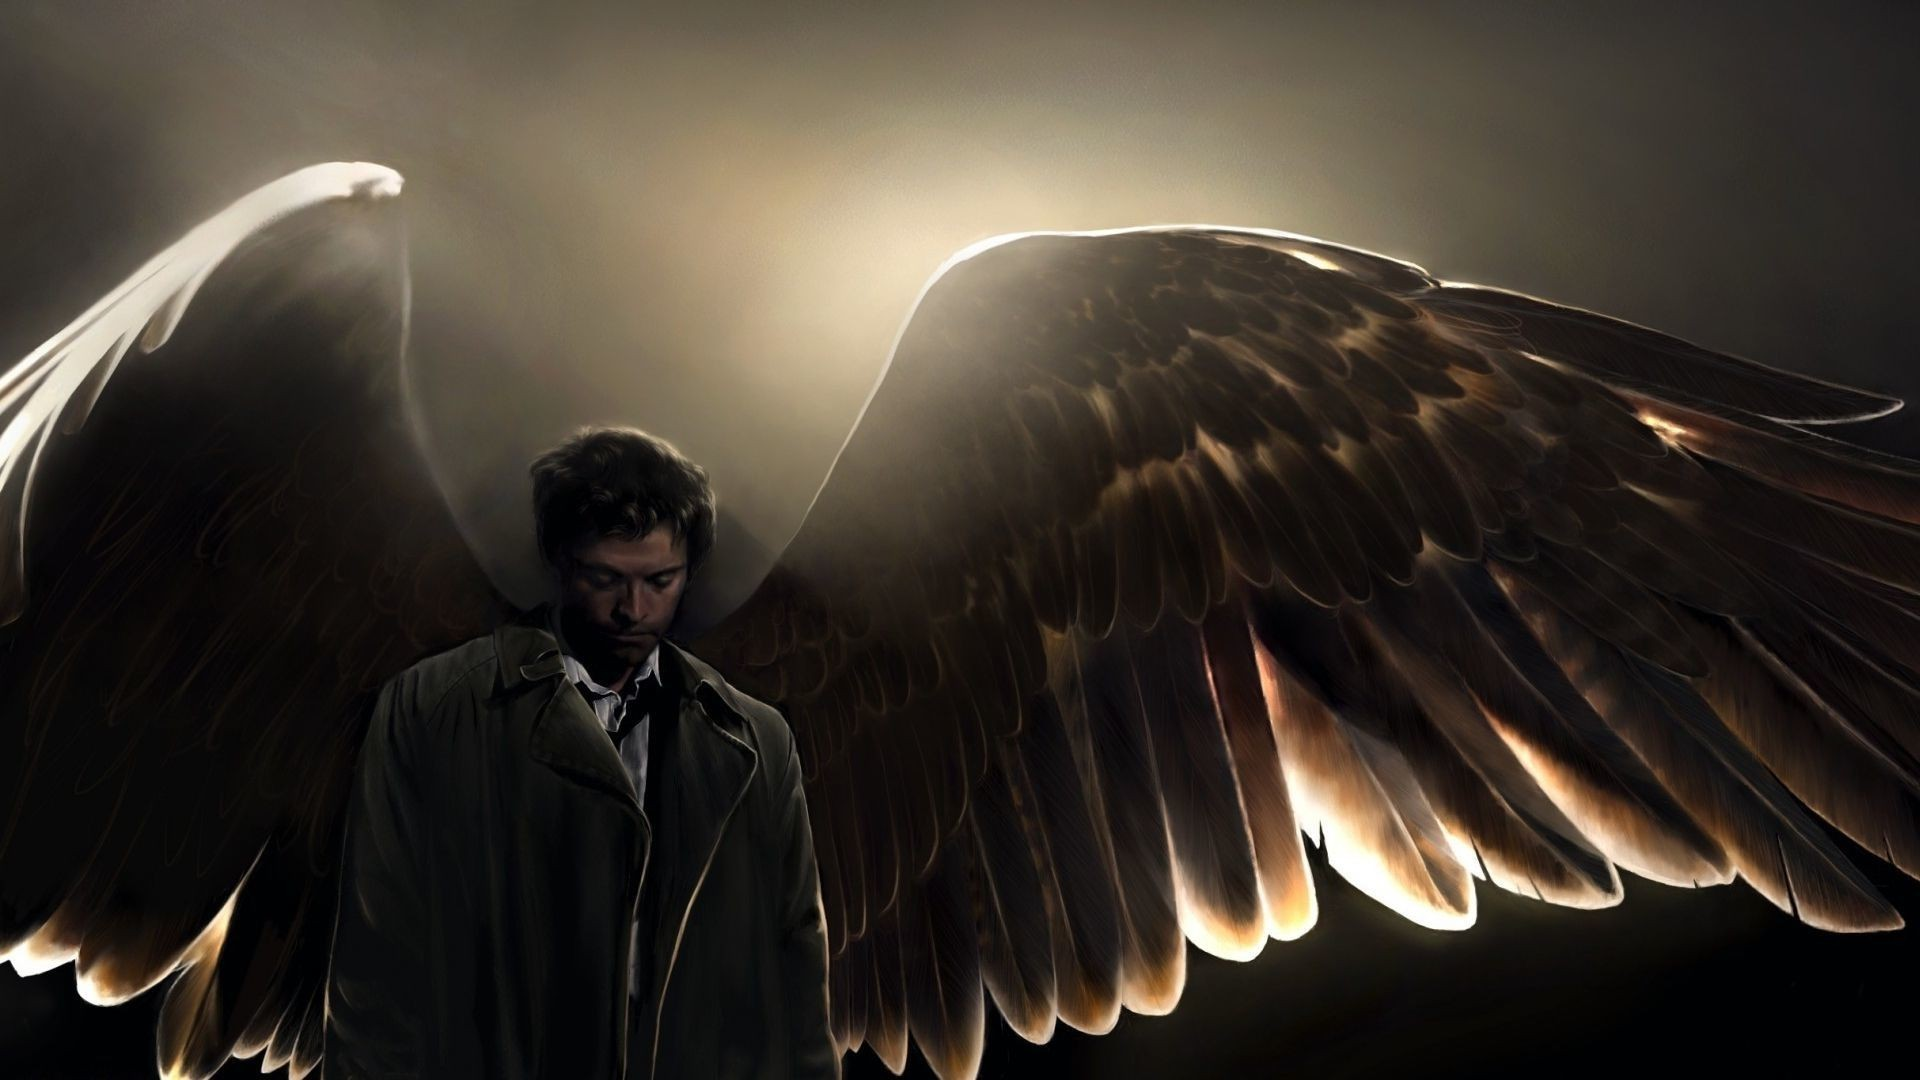 Supernatural Wallpaper 1920x1080 Posted By Sarah Simpson